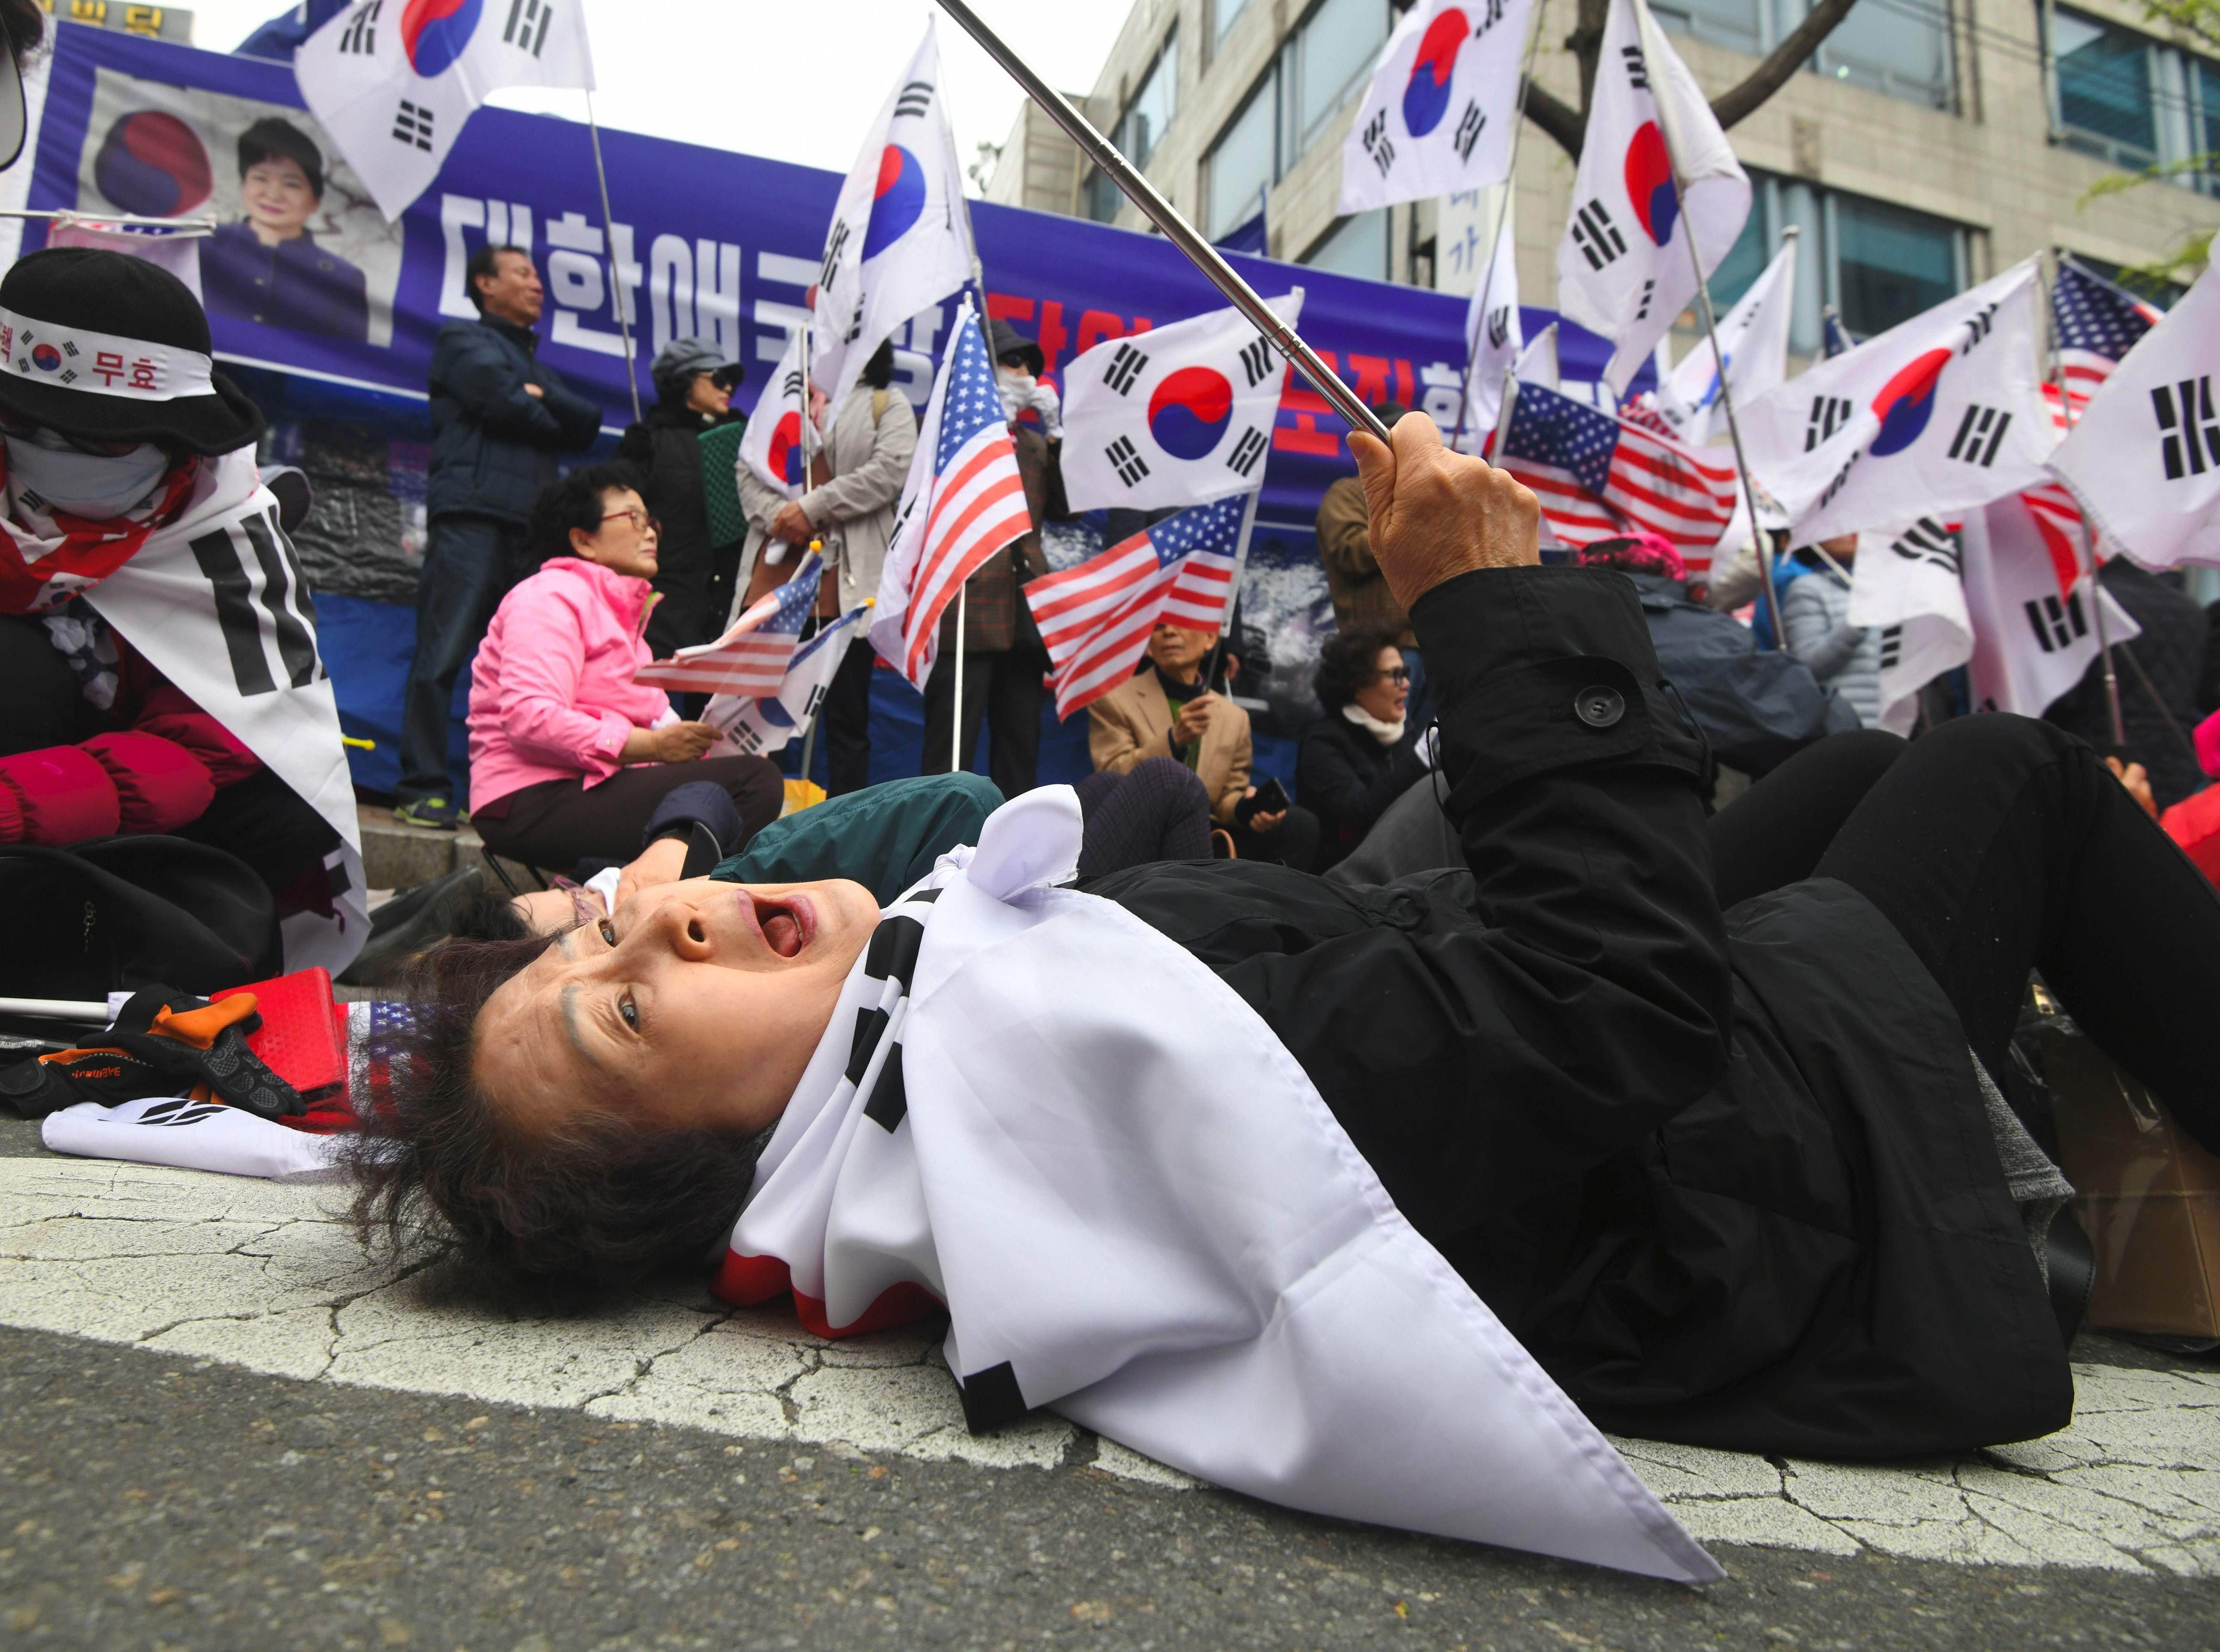 April 6, 2018: A supporter of South Korea's former President Park Geun-hye reacts after a court sentenced Park Geun-hye to 24 years in prison, during a rally outside the Seoul Central District Court in Seoul. South Korea's disgraced former president Park Geun-hye was jailed for 24 years on April 6, for corruption, closing out a dramatic fall from grace for the country's first woman leader who became a figure of public fury and ridicule.